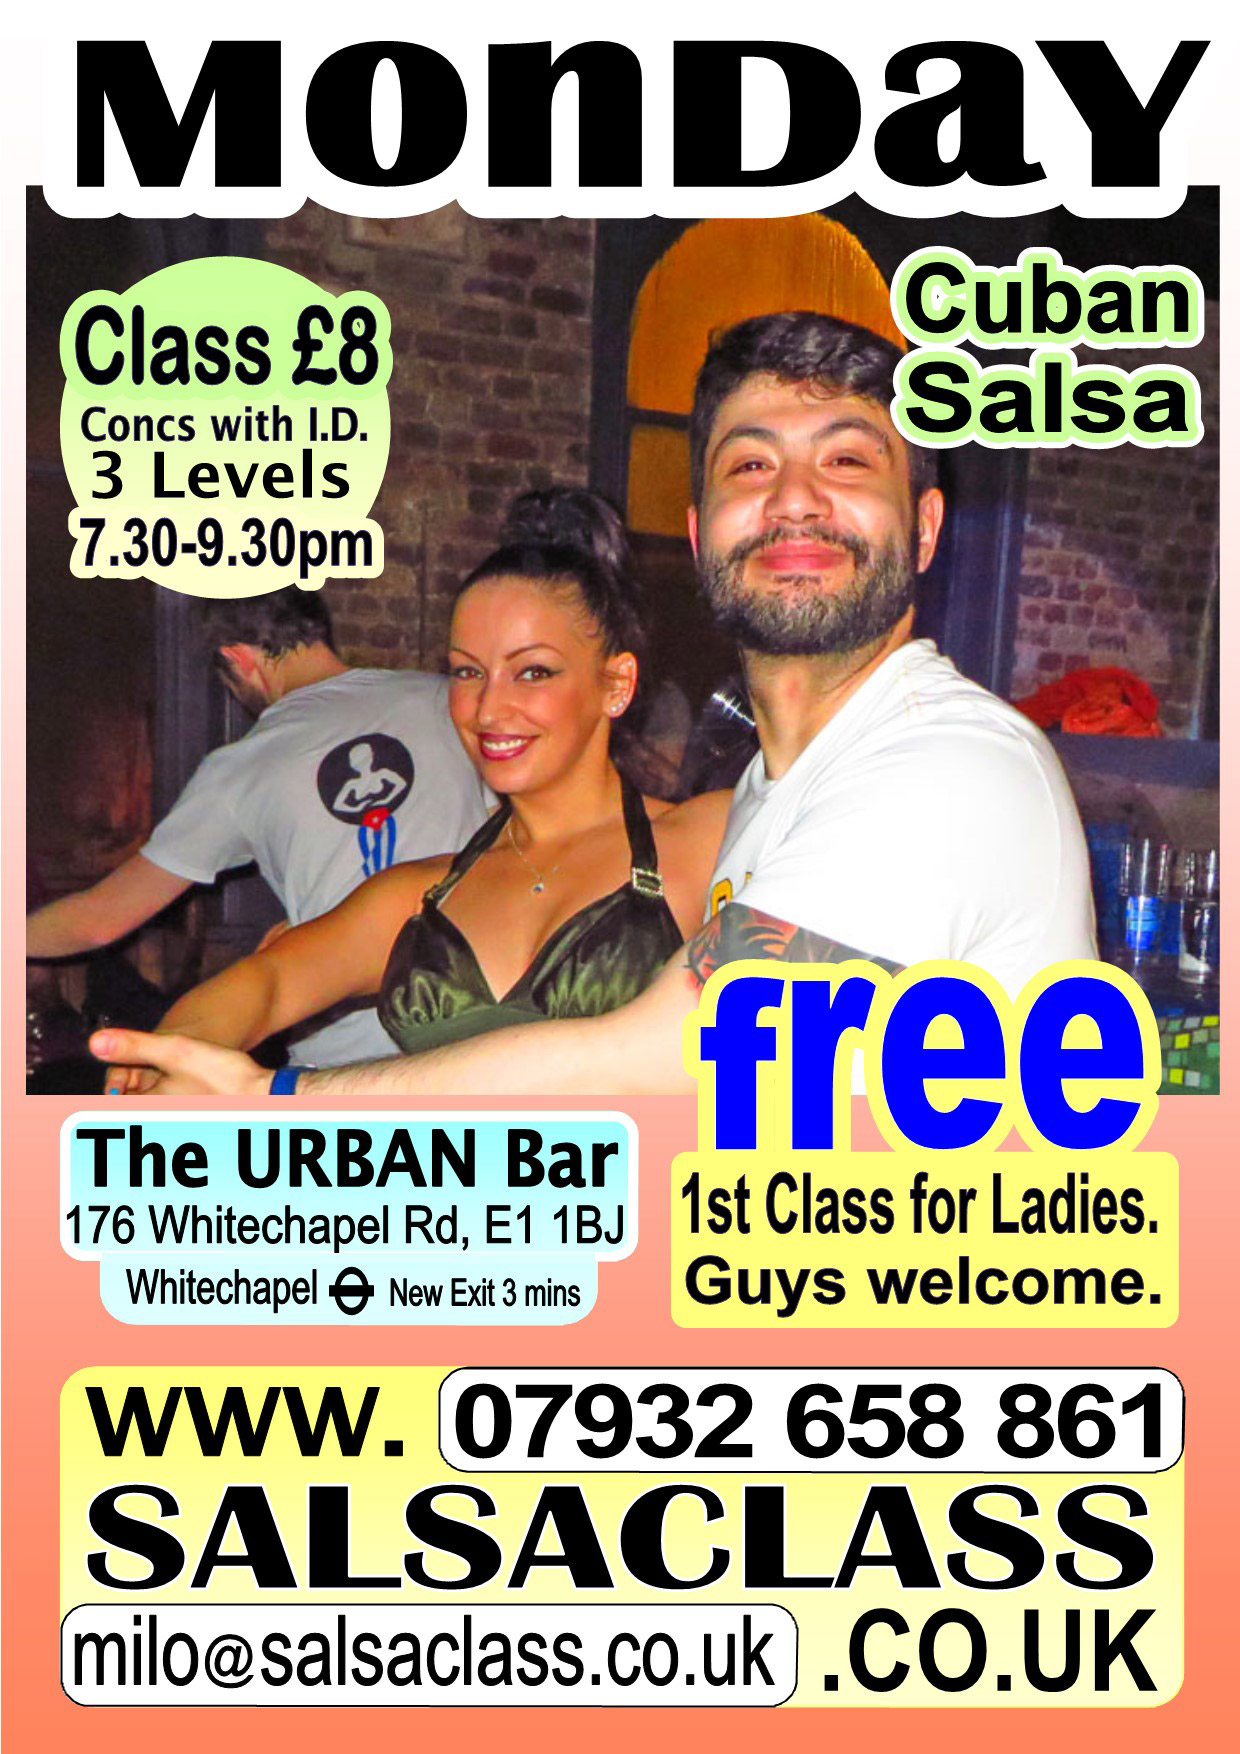 SalsaClass.co.uk - Mondays at the Urban Bar, 176 Whitechapel Road, London E1 1BJ. Beginners are always very welcome. Please join us for a Super Salsa Time.